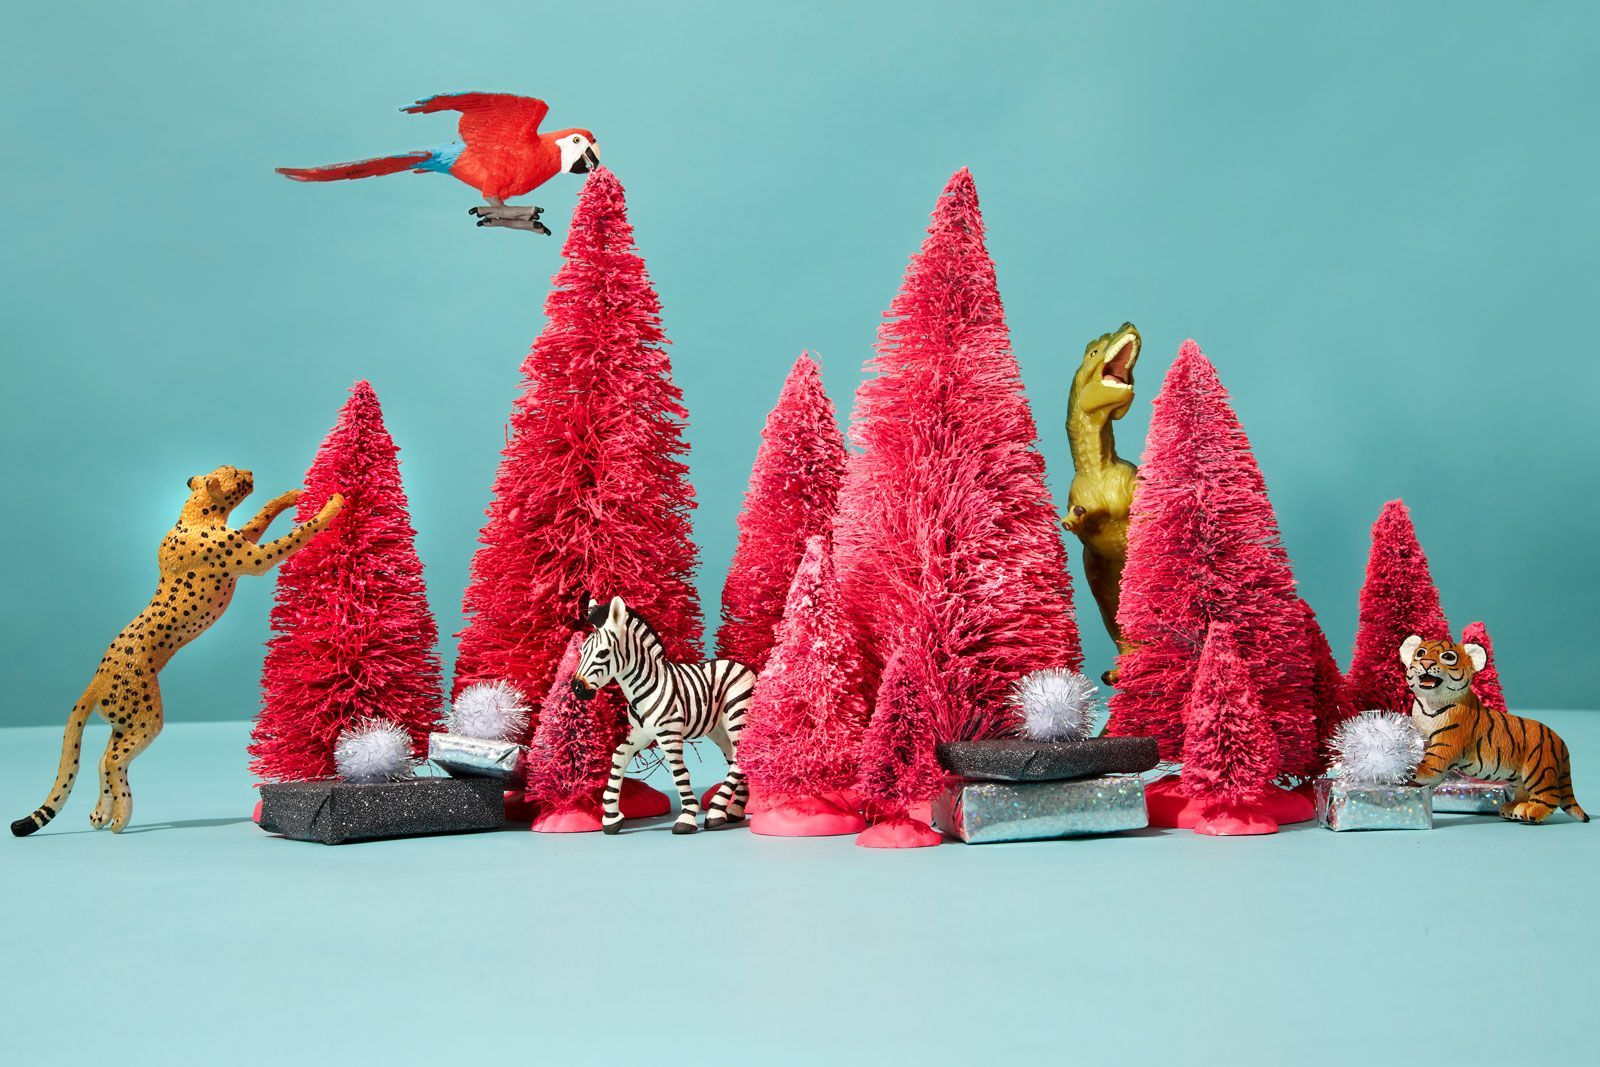 5 Festive Christmas Trees For Small Spaces